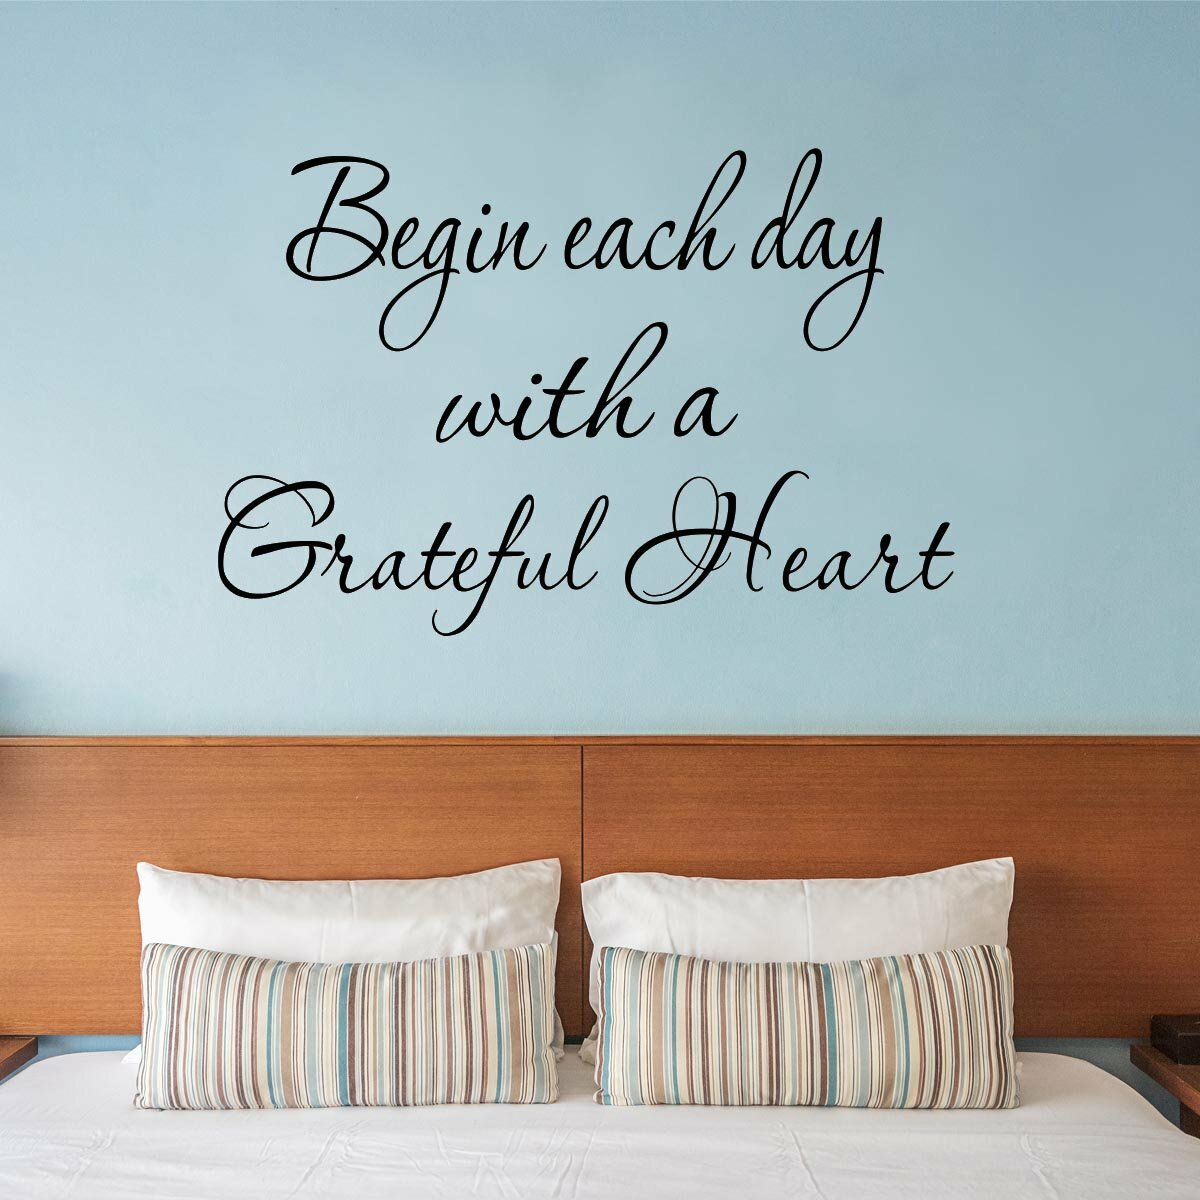 Begin Each Day with a Grateful Heart Vinyl Quotes Wall Decal